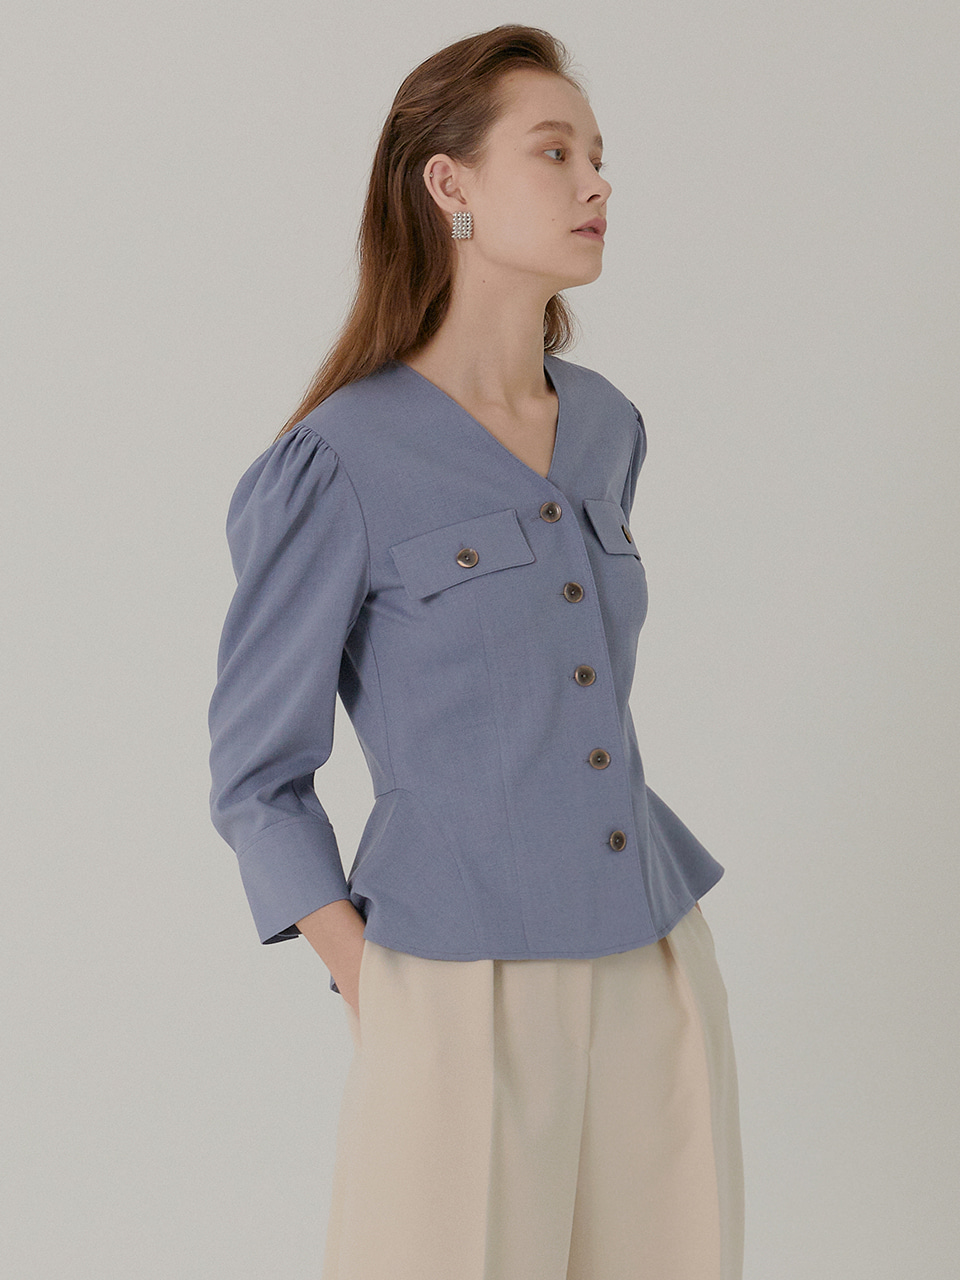 IRIS Collaress Peplum Blouse_VIOLET